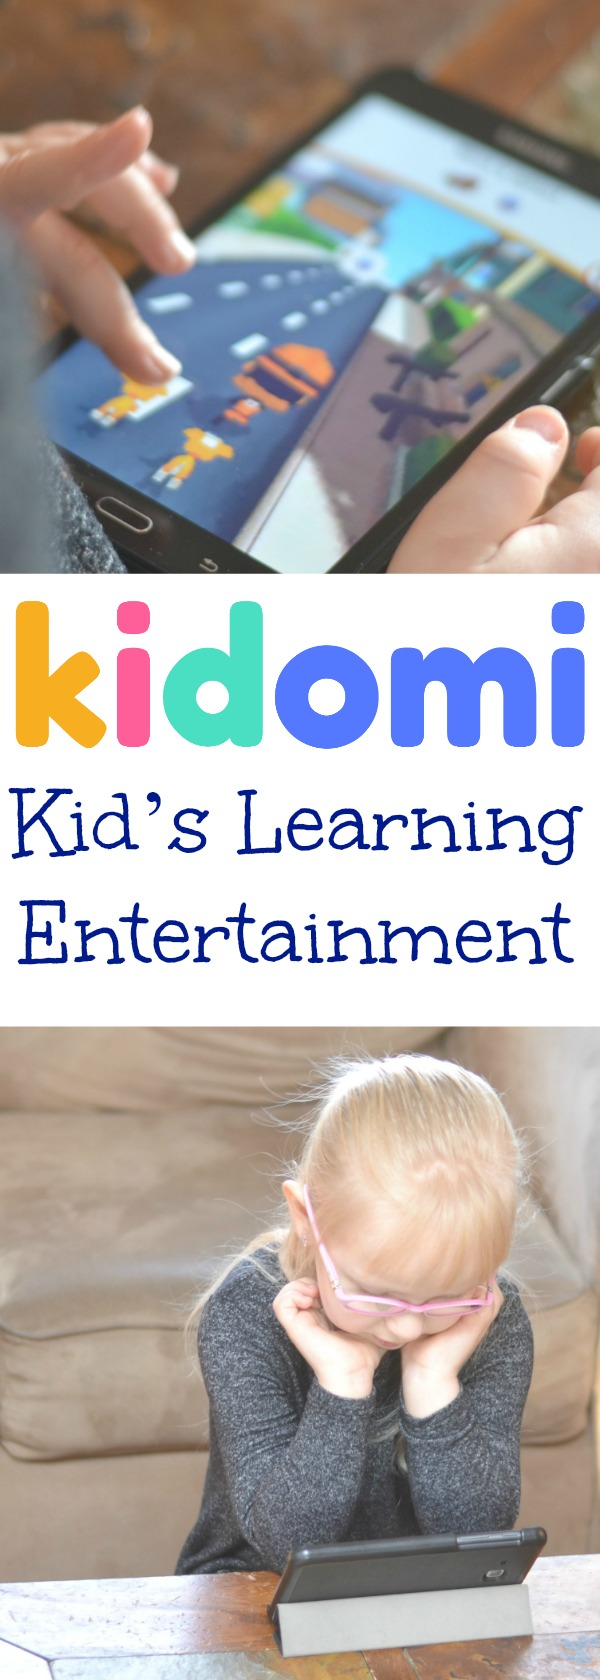 kidomi app, apps for kids, learning apps for kids, kidomi learning app, kidomi for tablets, screen time tips for kids, screen time apps for kids